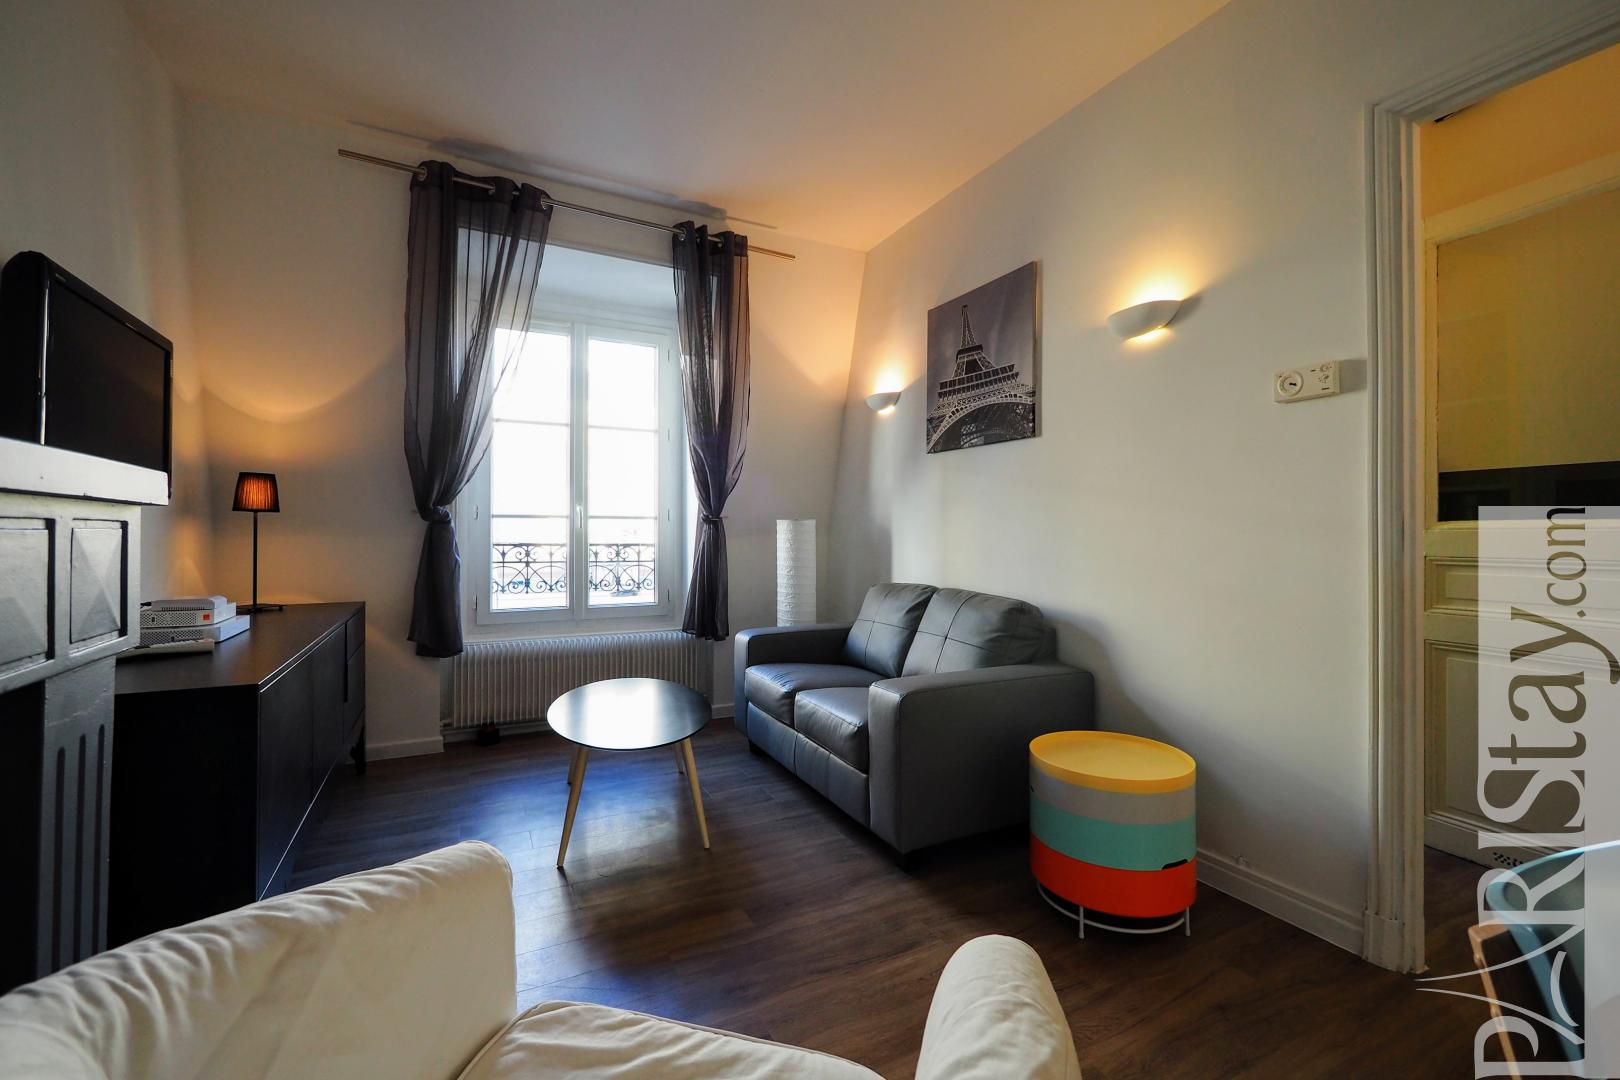 Paris 2 bedroom apartment for rent furnished republique temple